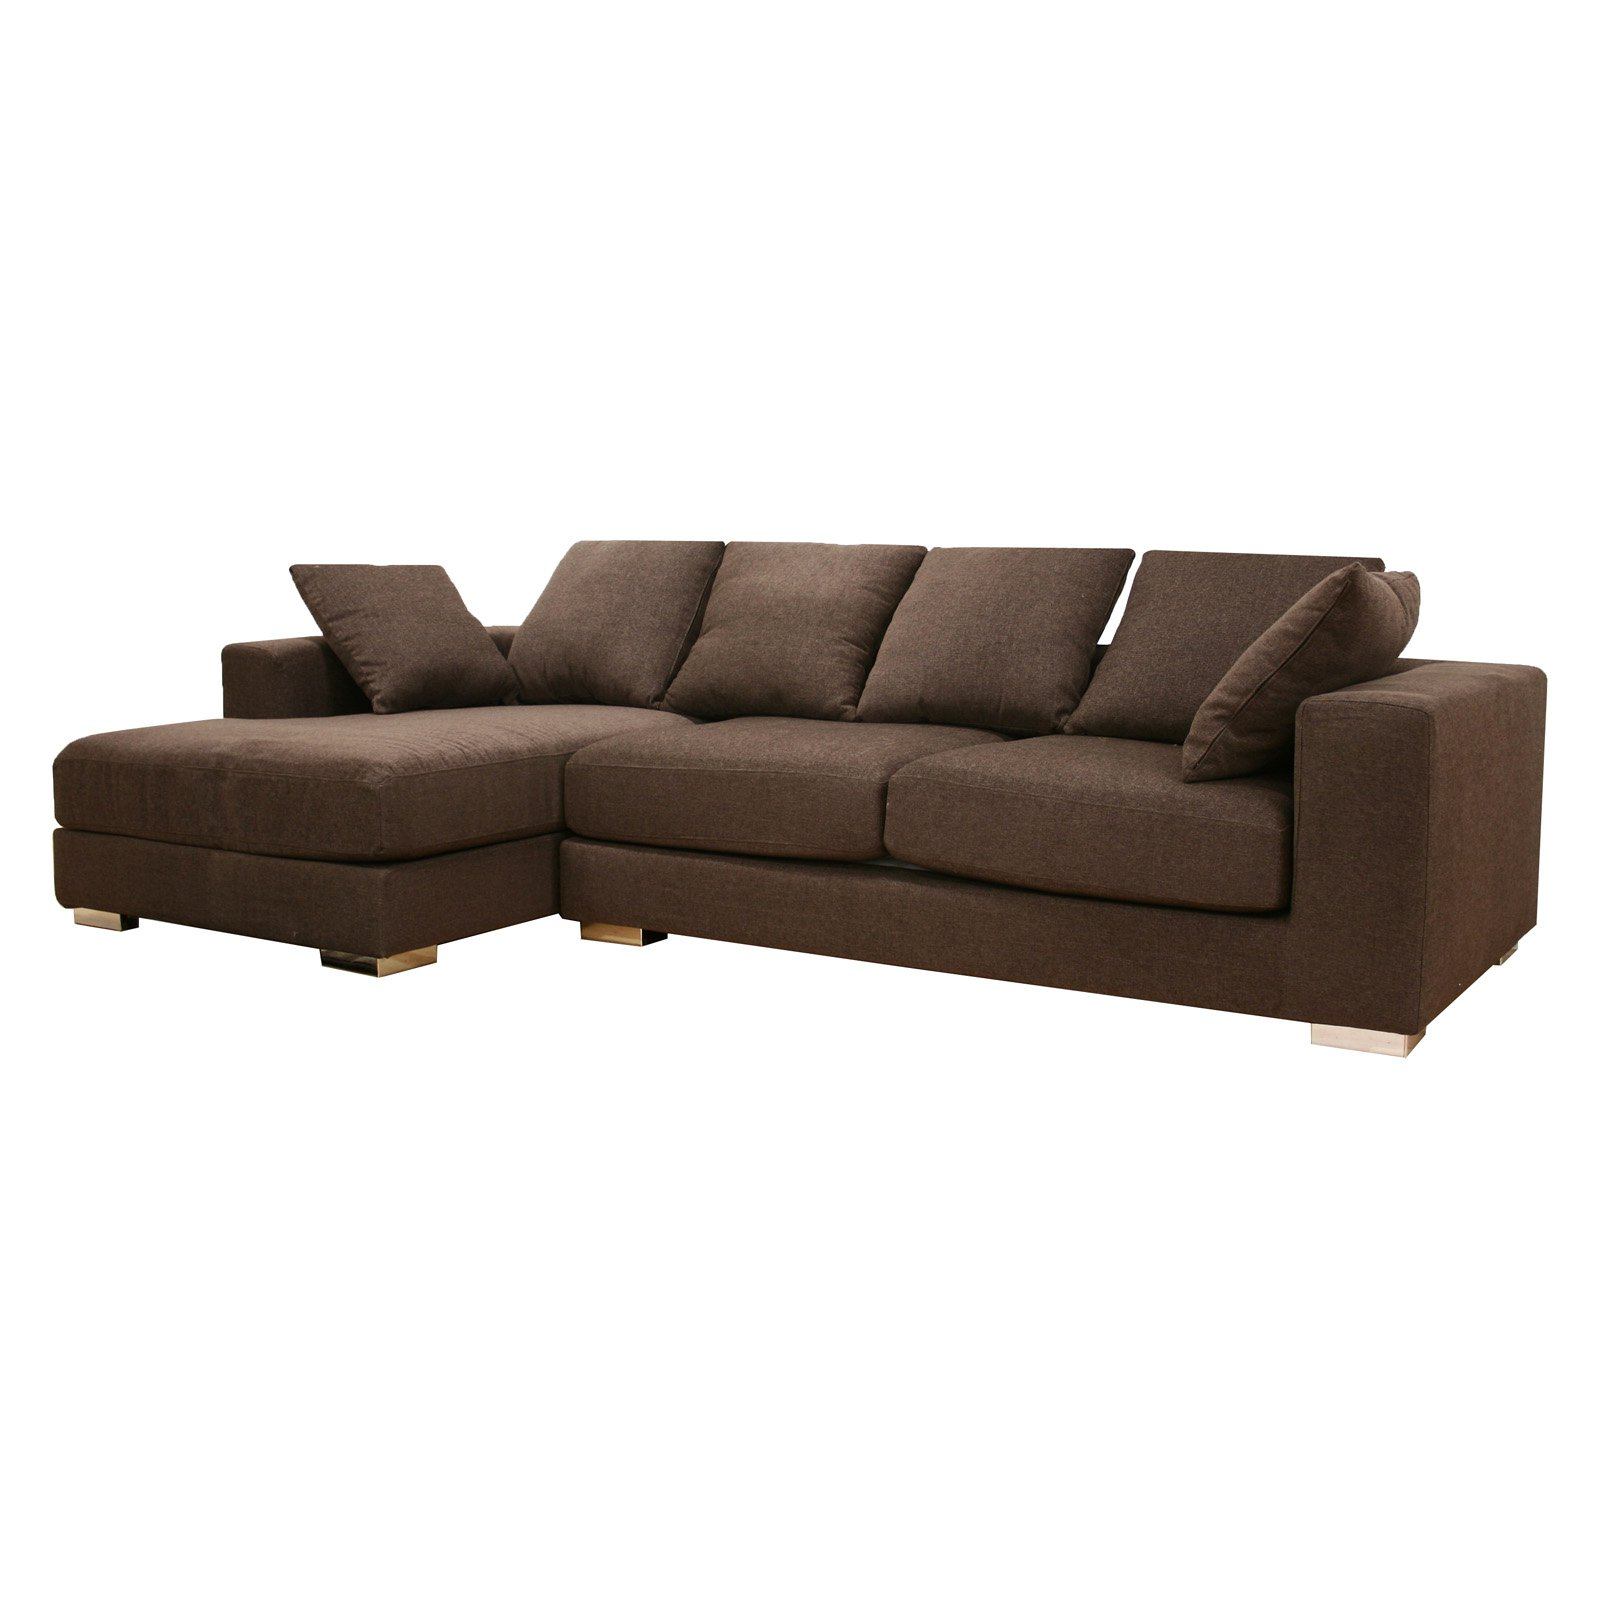 Baxton Studio Florence Brown Twill Sectional Sofa